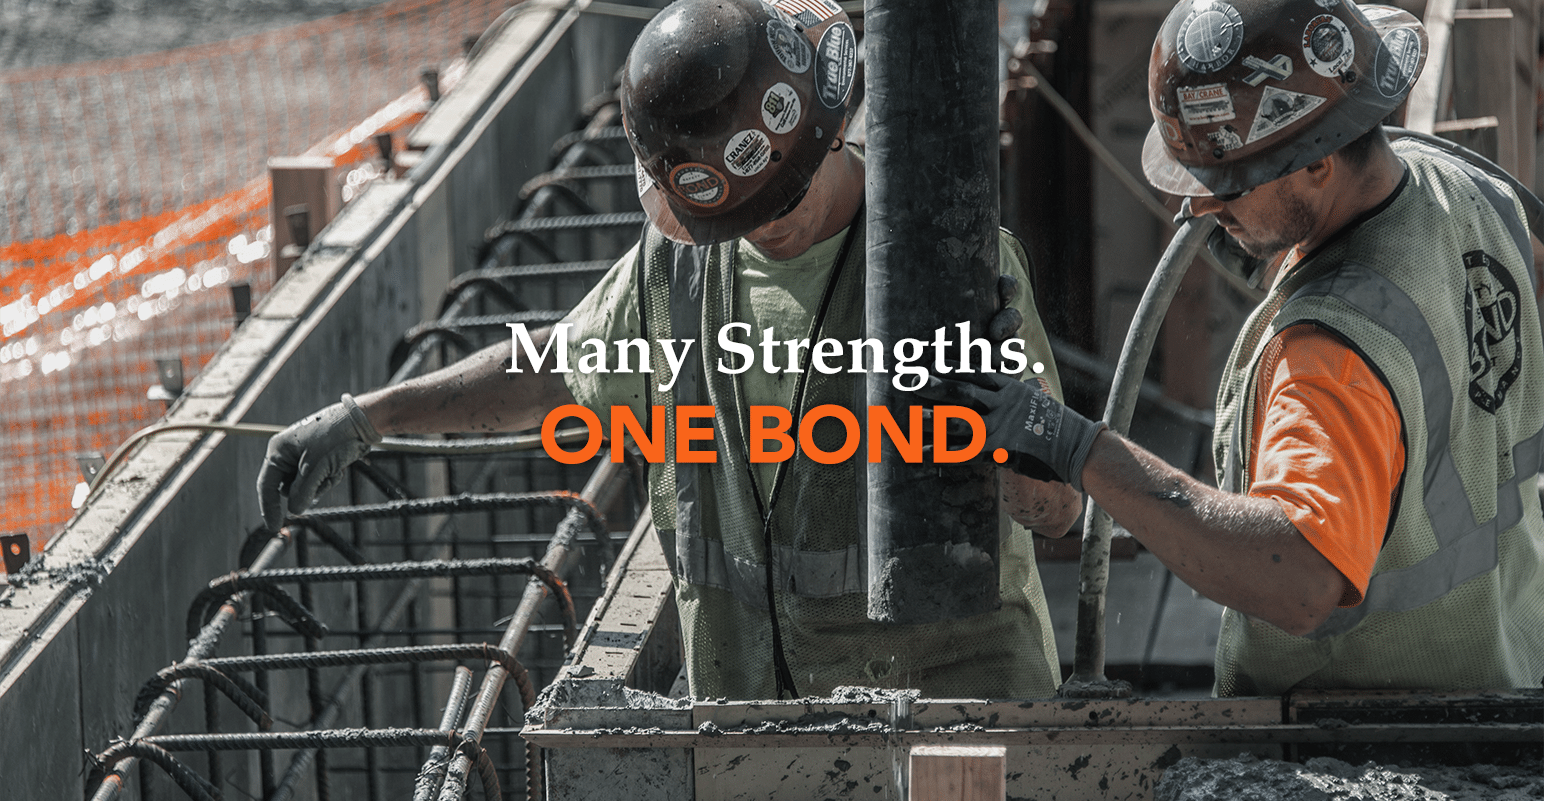 Many Strengths. One Bond.